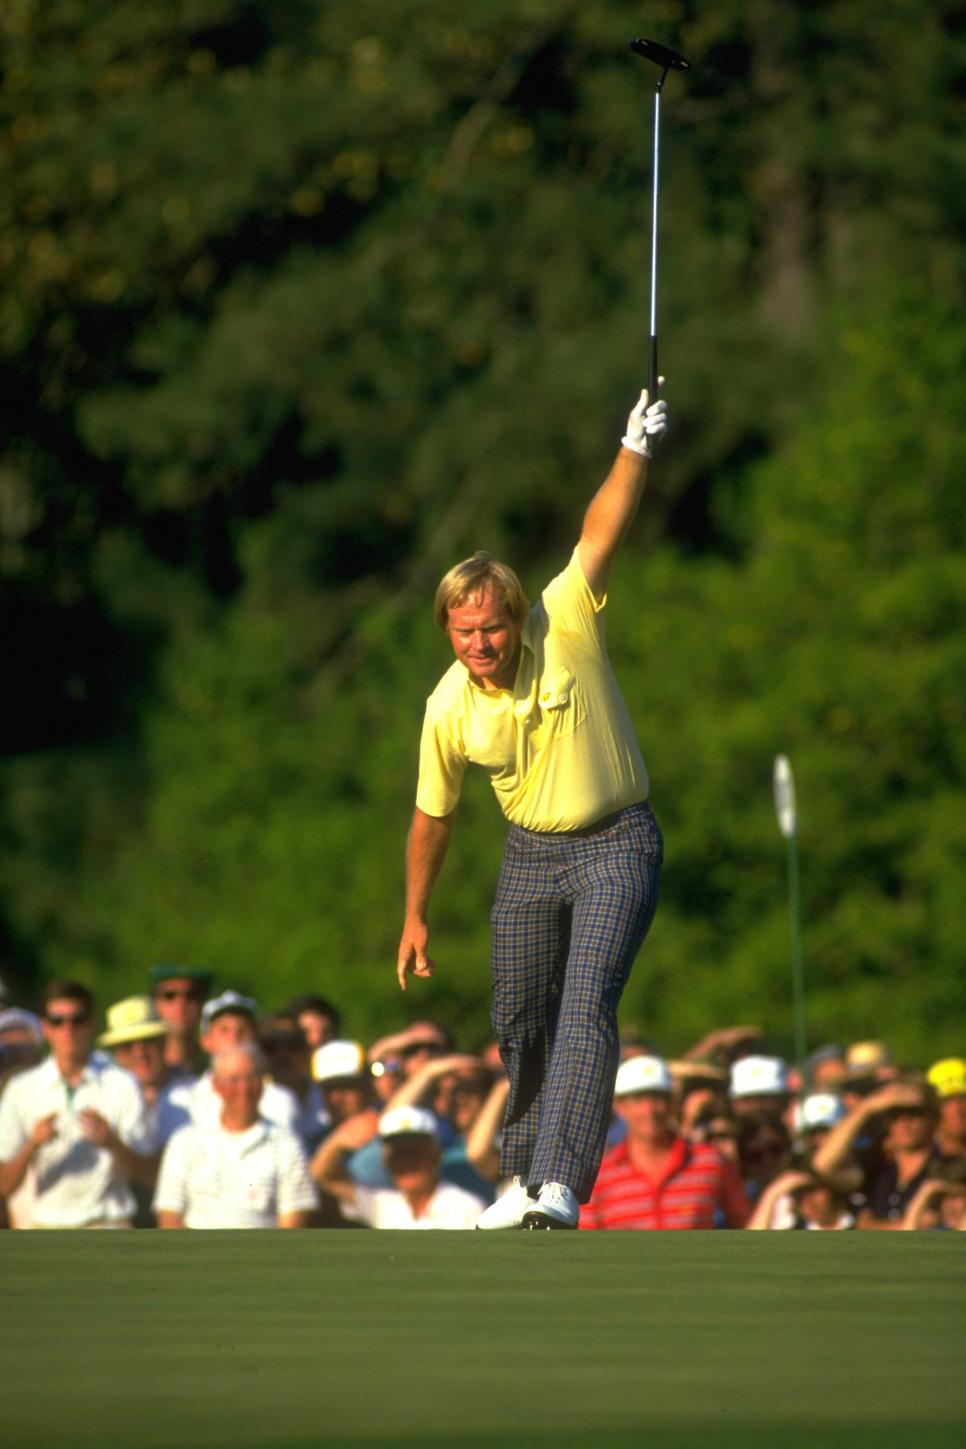 jack-nicklaus-masters-1986-sunday-17th-green-yes-sir-putt.jpg